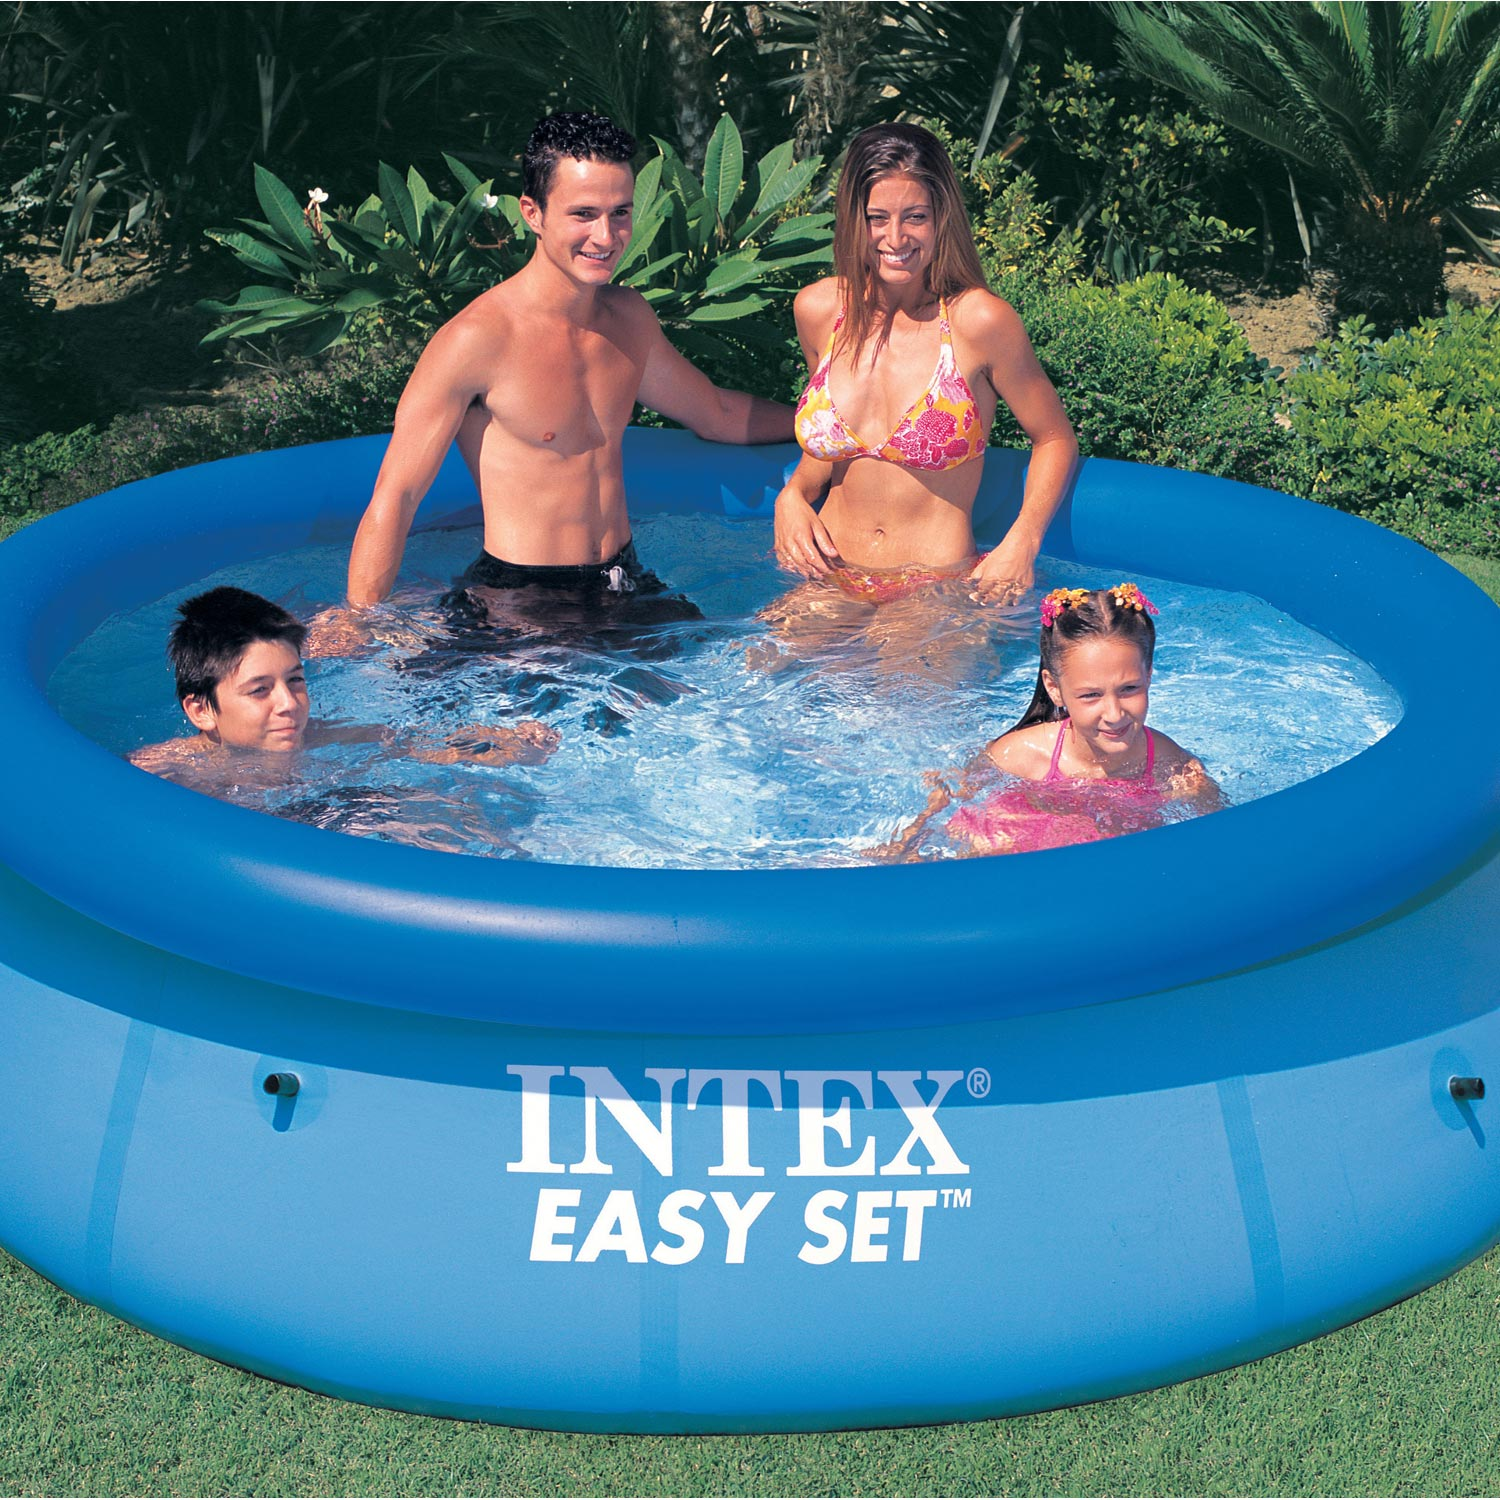 Piscine hors sol gonflable easy set clearview intex ronde - Piscine hors sol gonflable ...